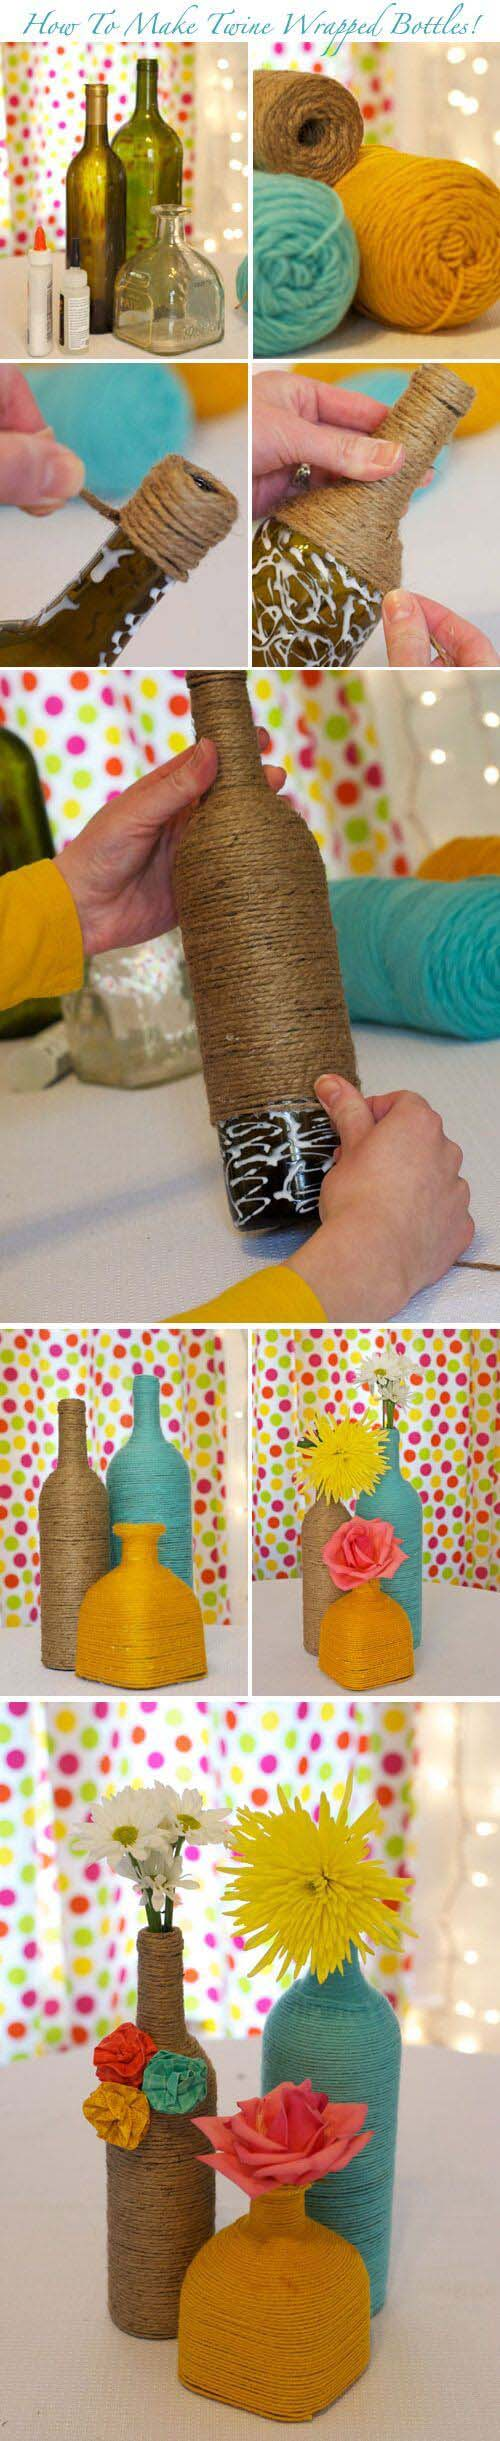 Gorgeous Twine Wrapped Bottle #winebottle #crafts #repurpose #decorhomeideas